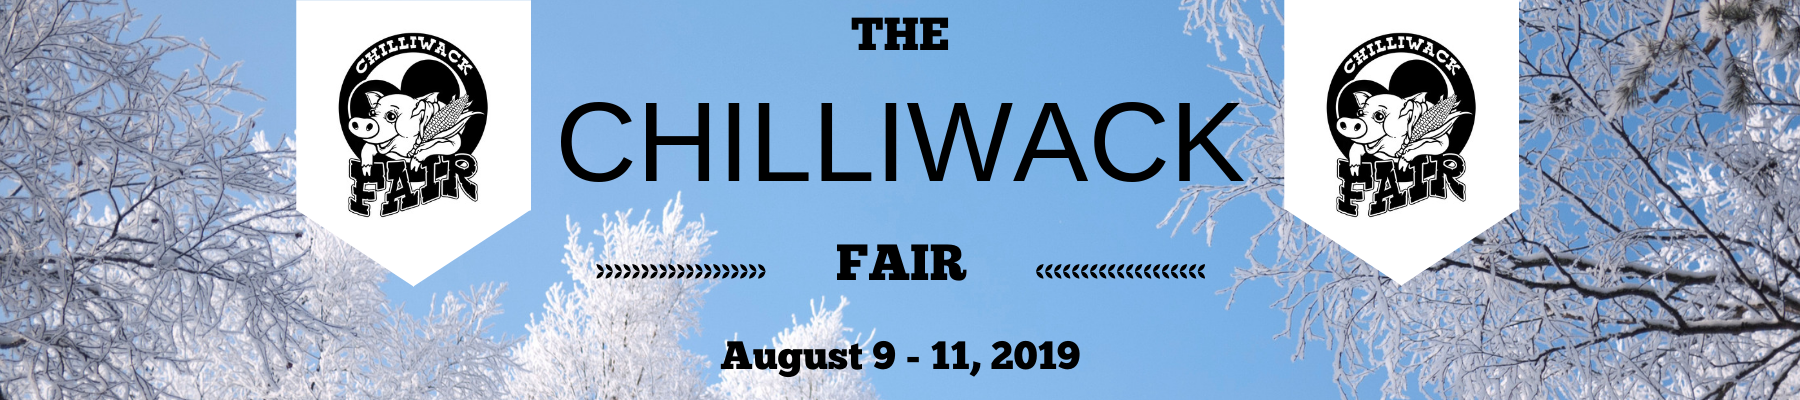 The 147th Annual Chilliwack Fair